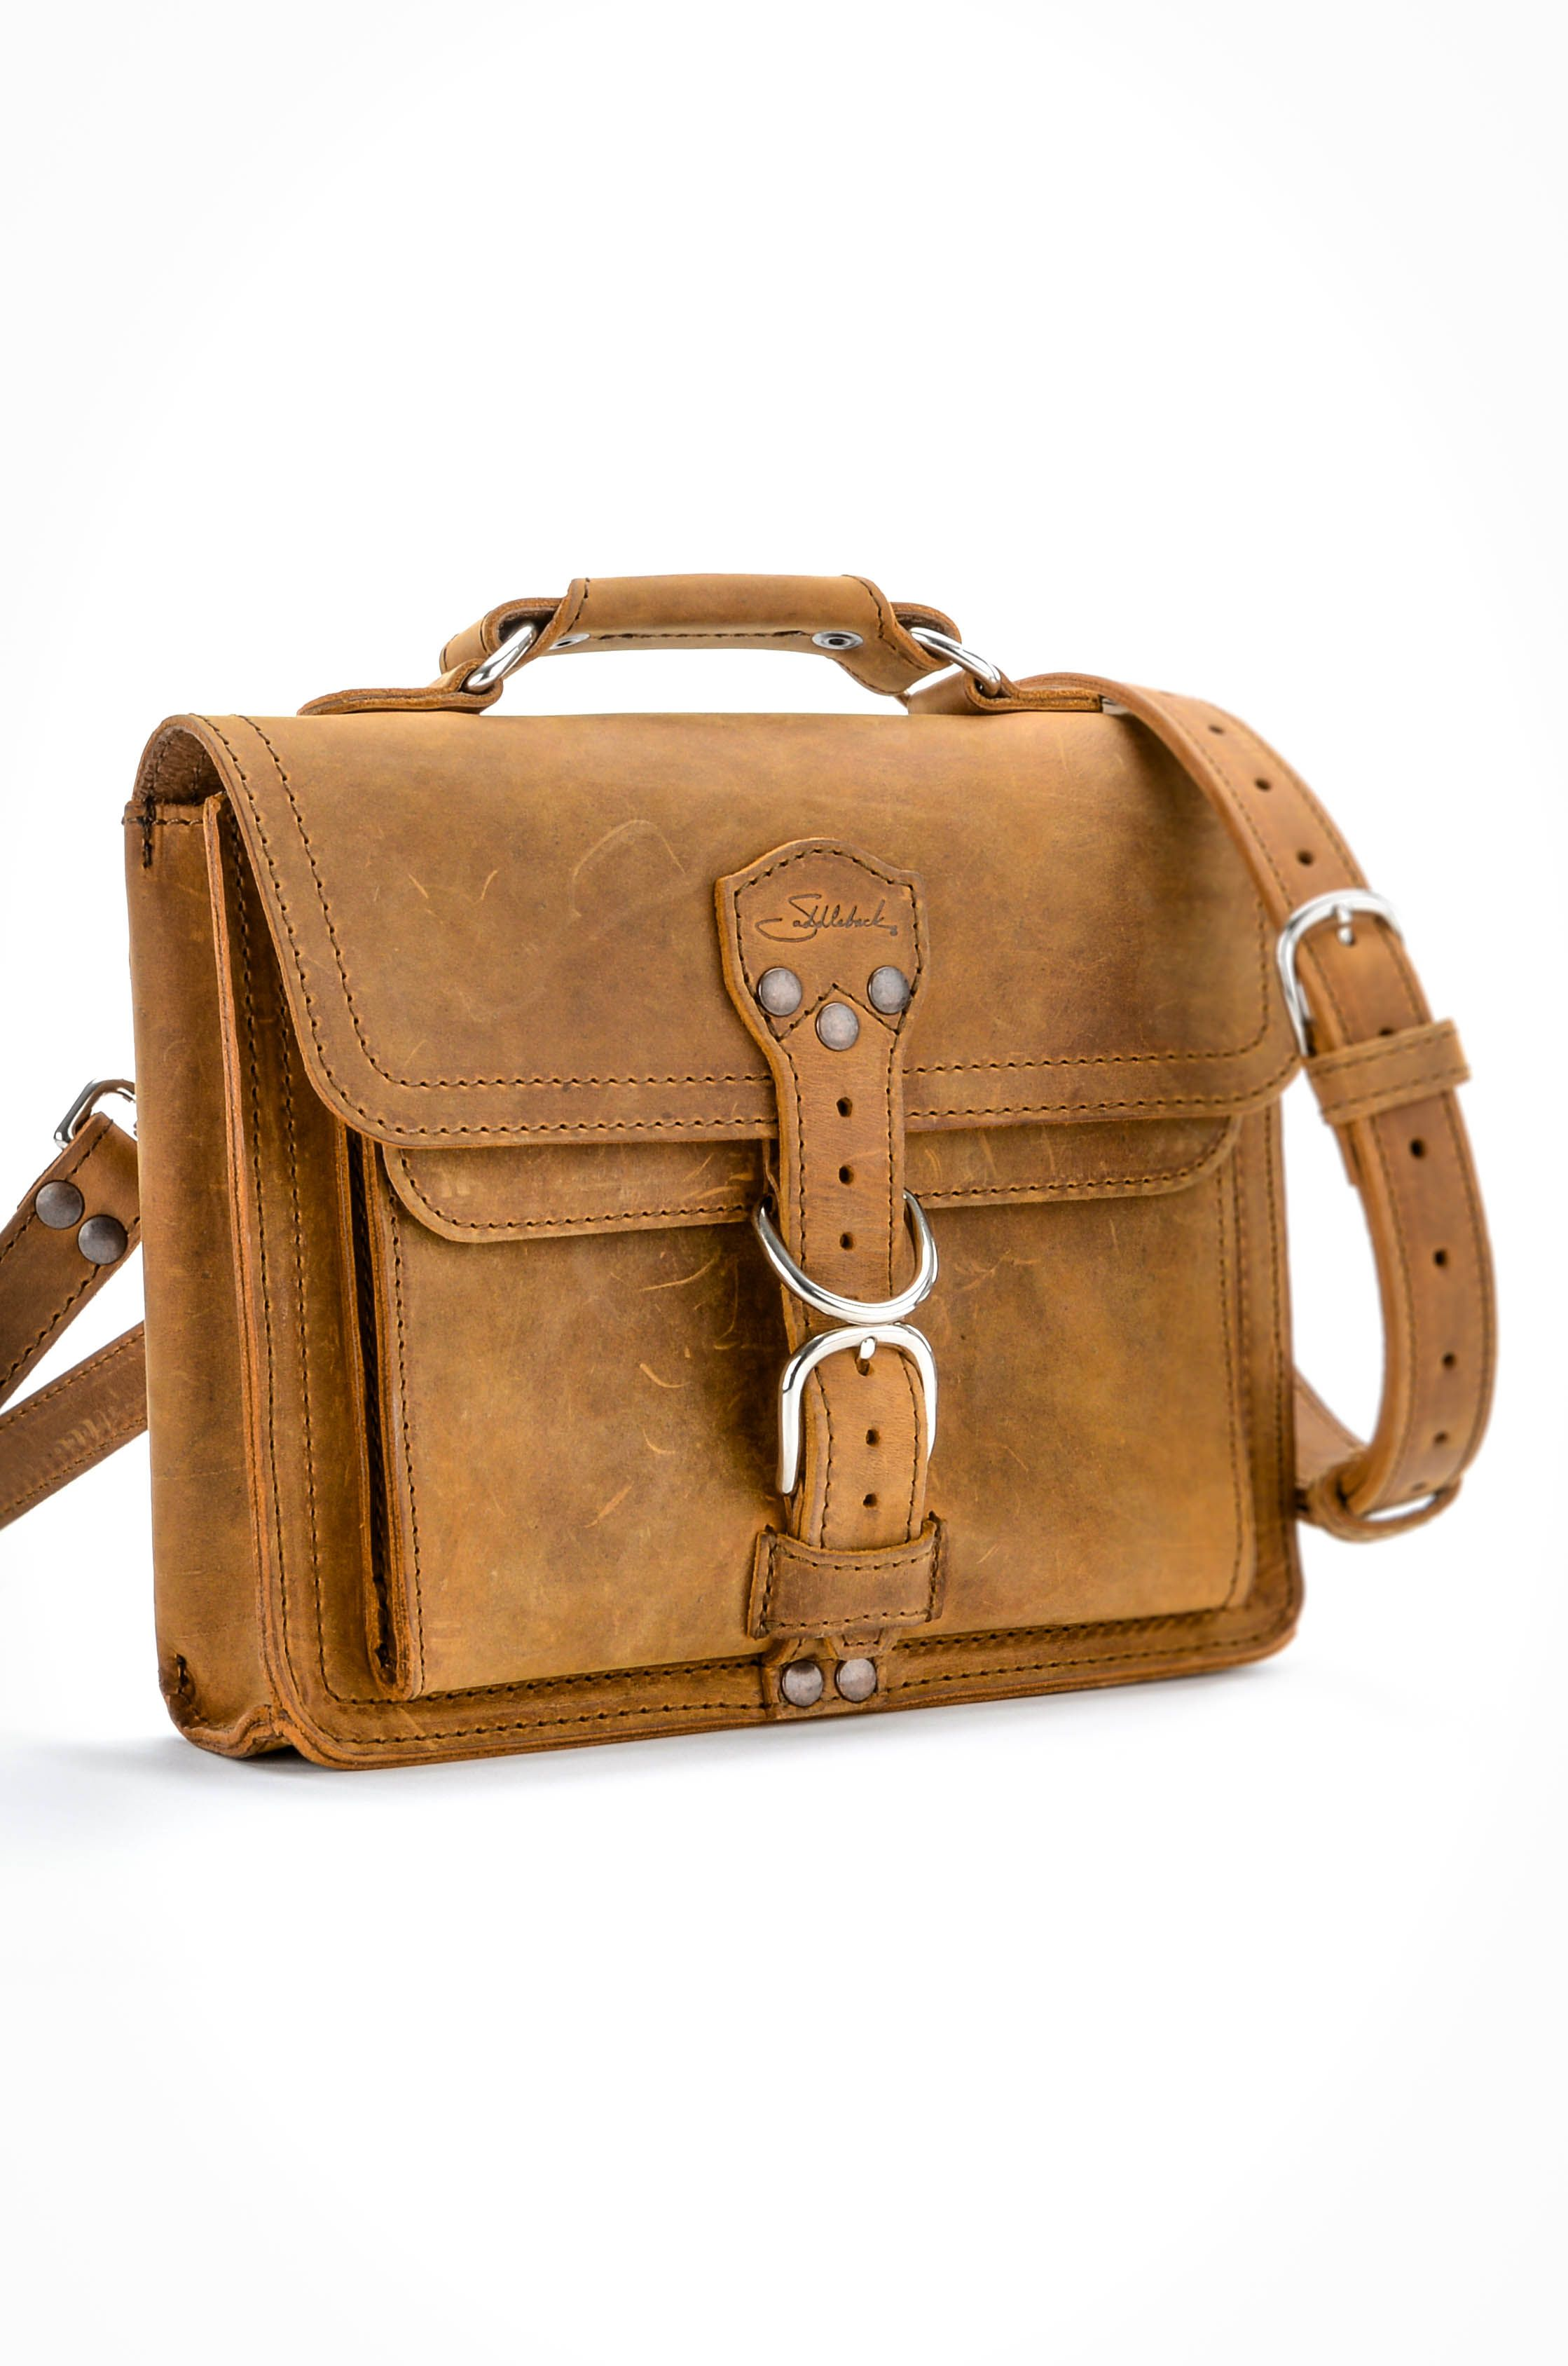 The Saddleback Leather Tablet Bag In 100 Year Warranty 198 00